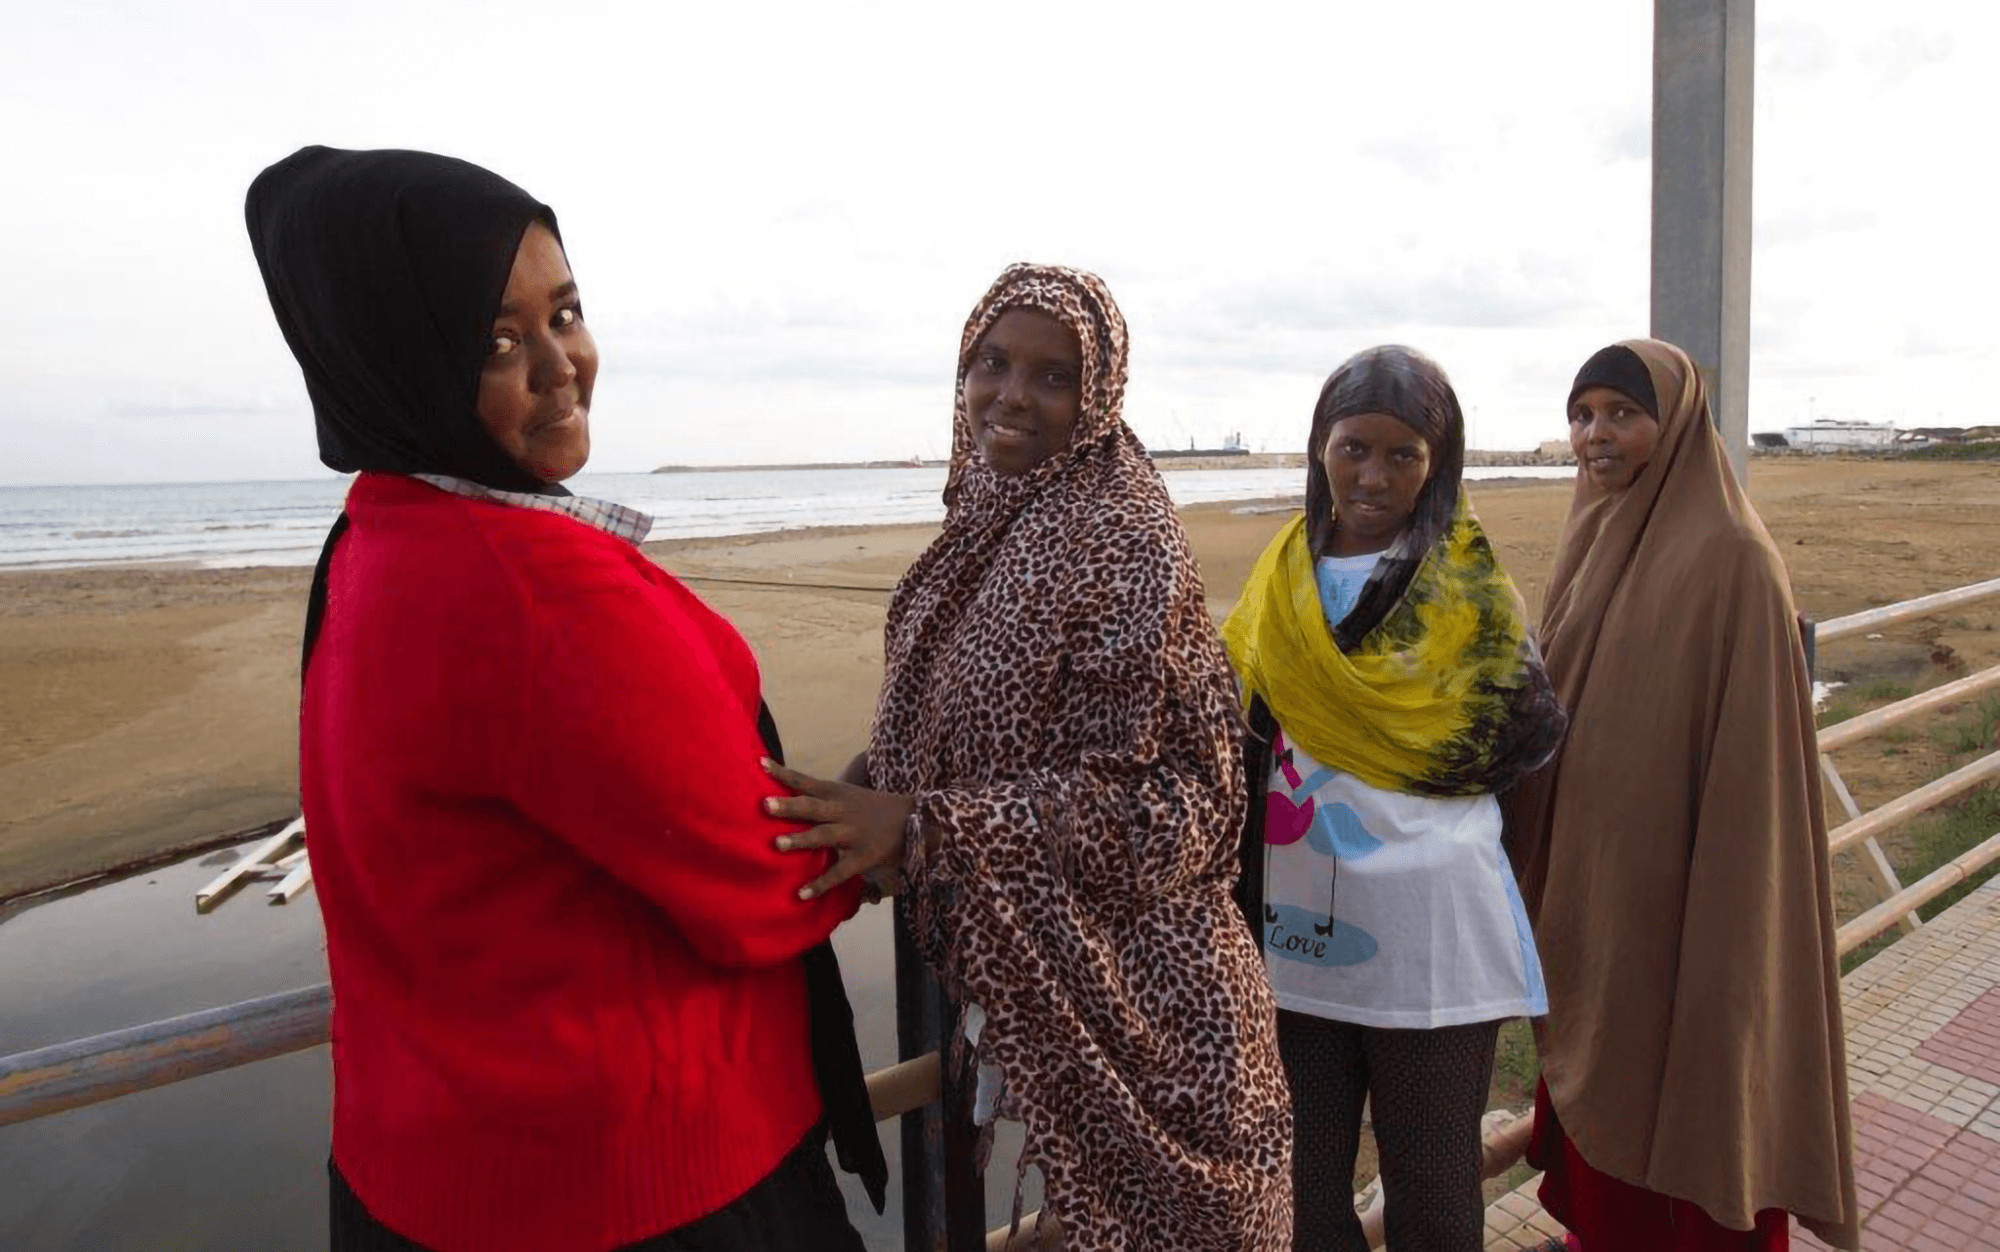 Four female Muslim women wearing hijabs standing on a boardwalk by the ocean, looking back and smiling.